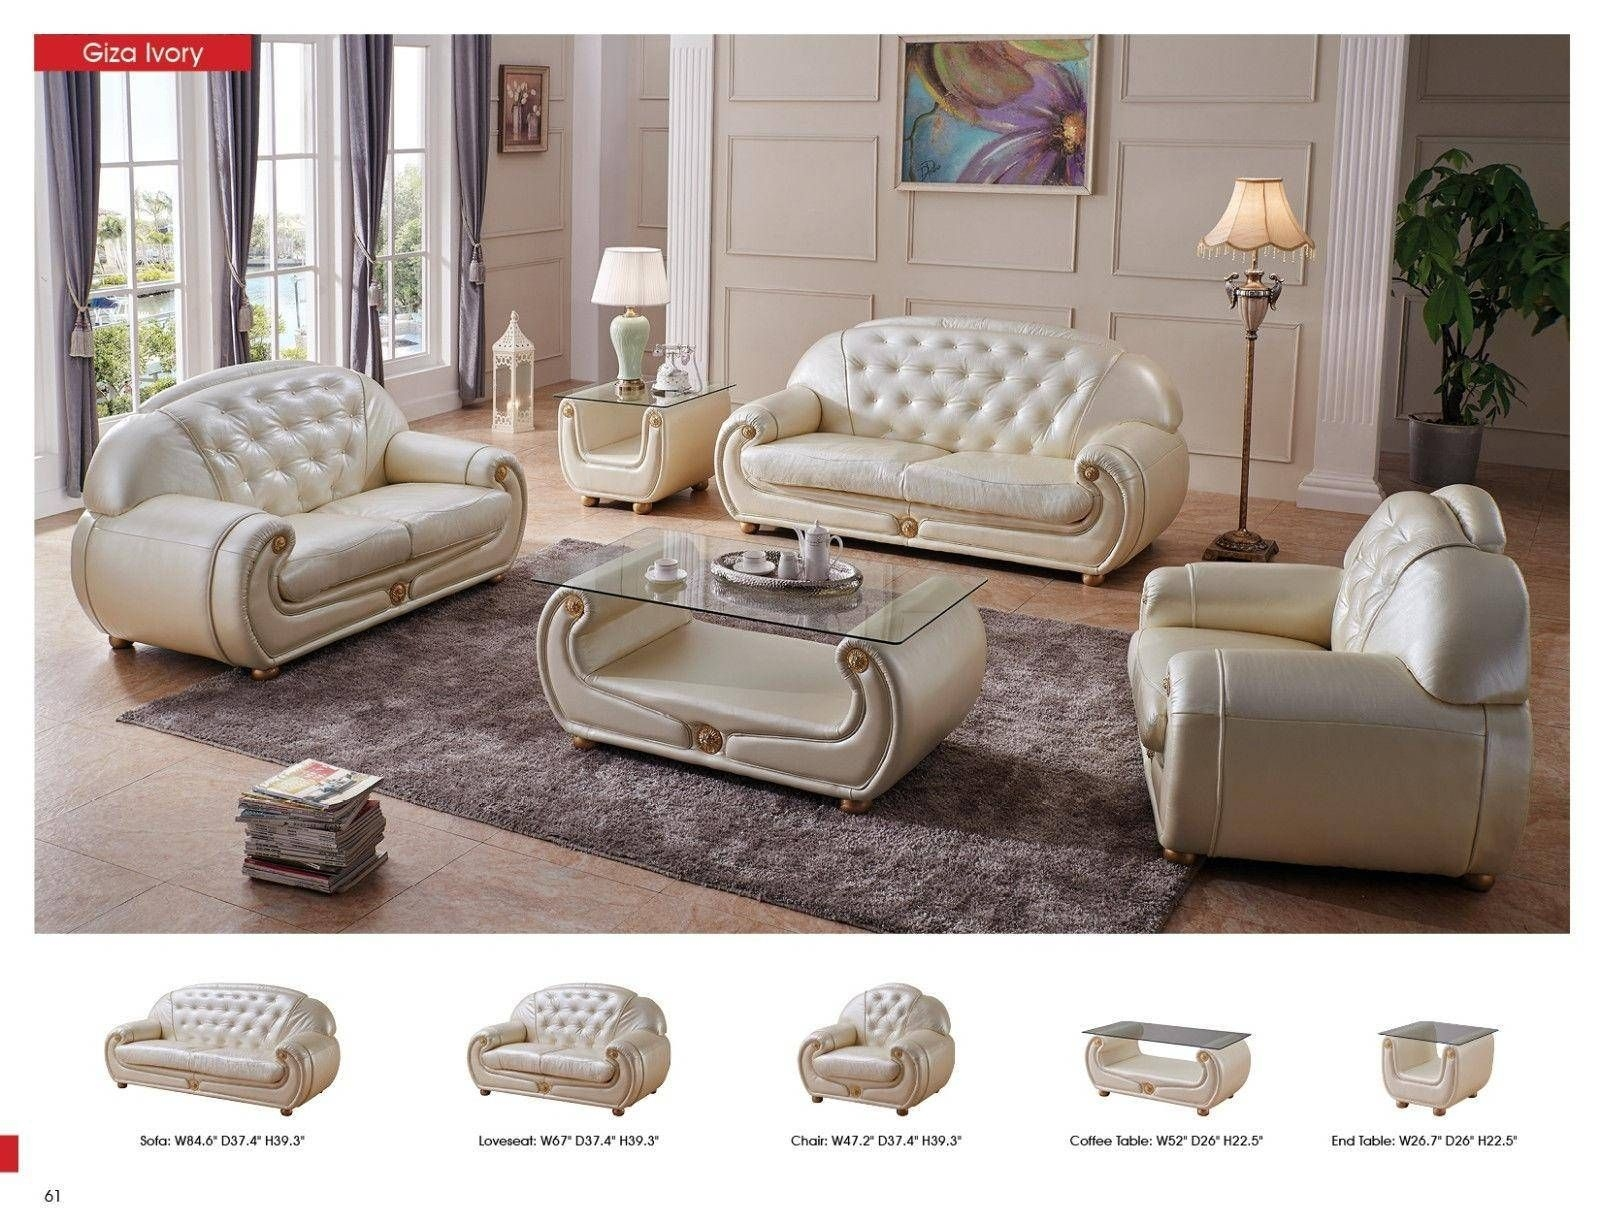 Luxury Light Beige Top Grain Leather Sofa Set 3Pcs Contemporary Esf Giza Esf Giza Beigesofa